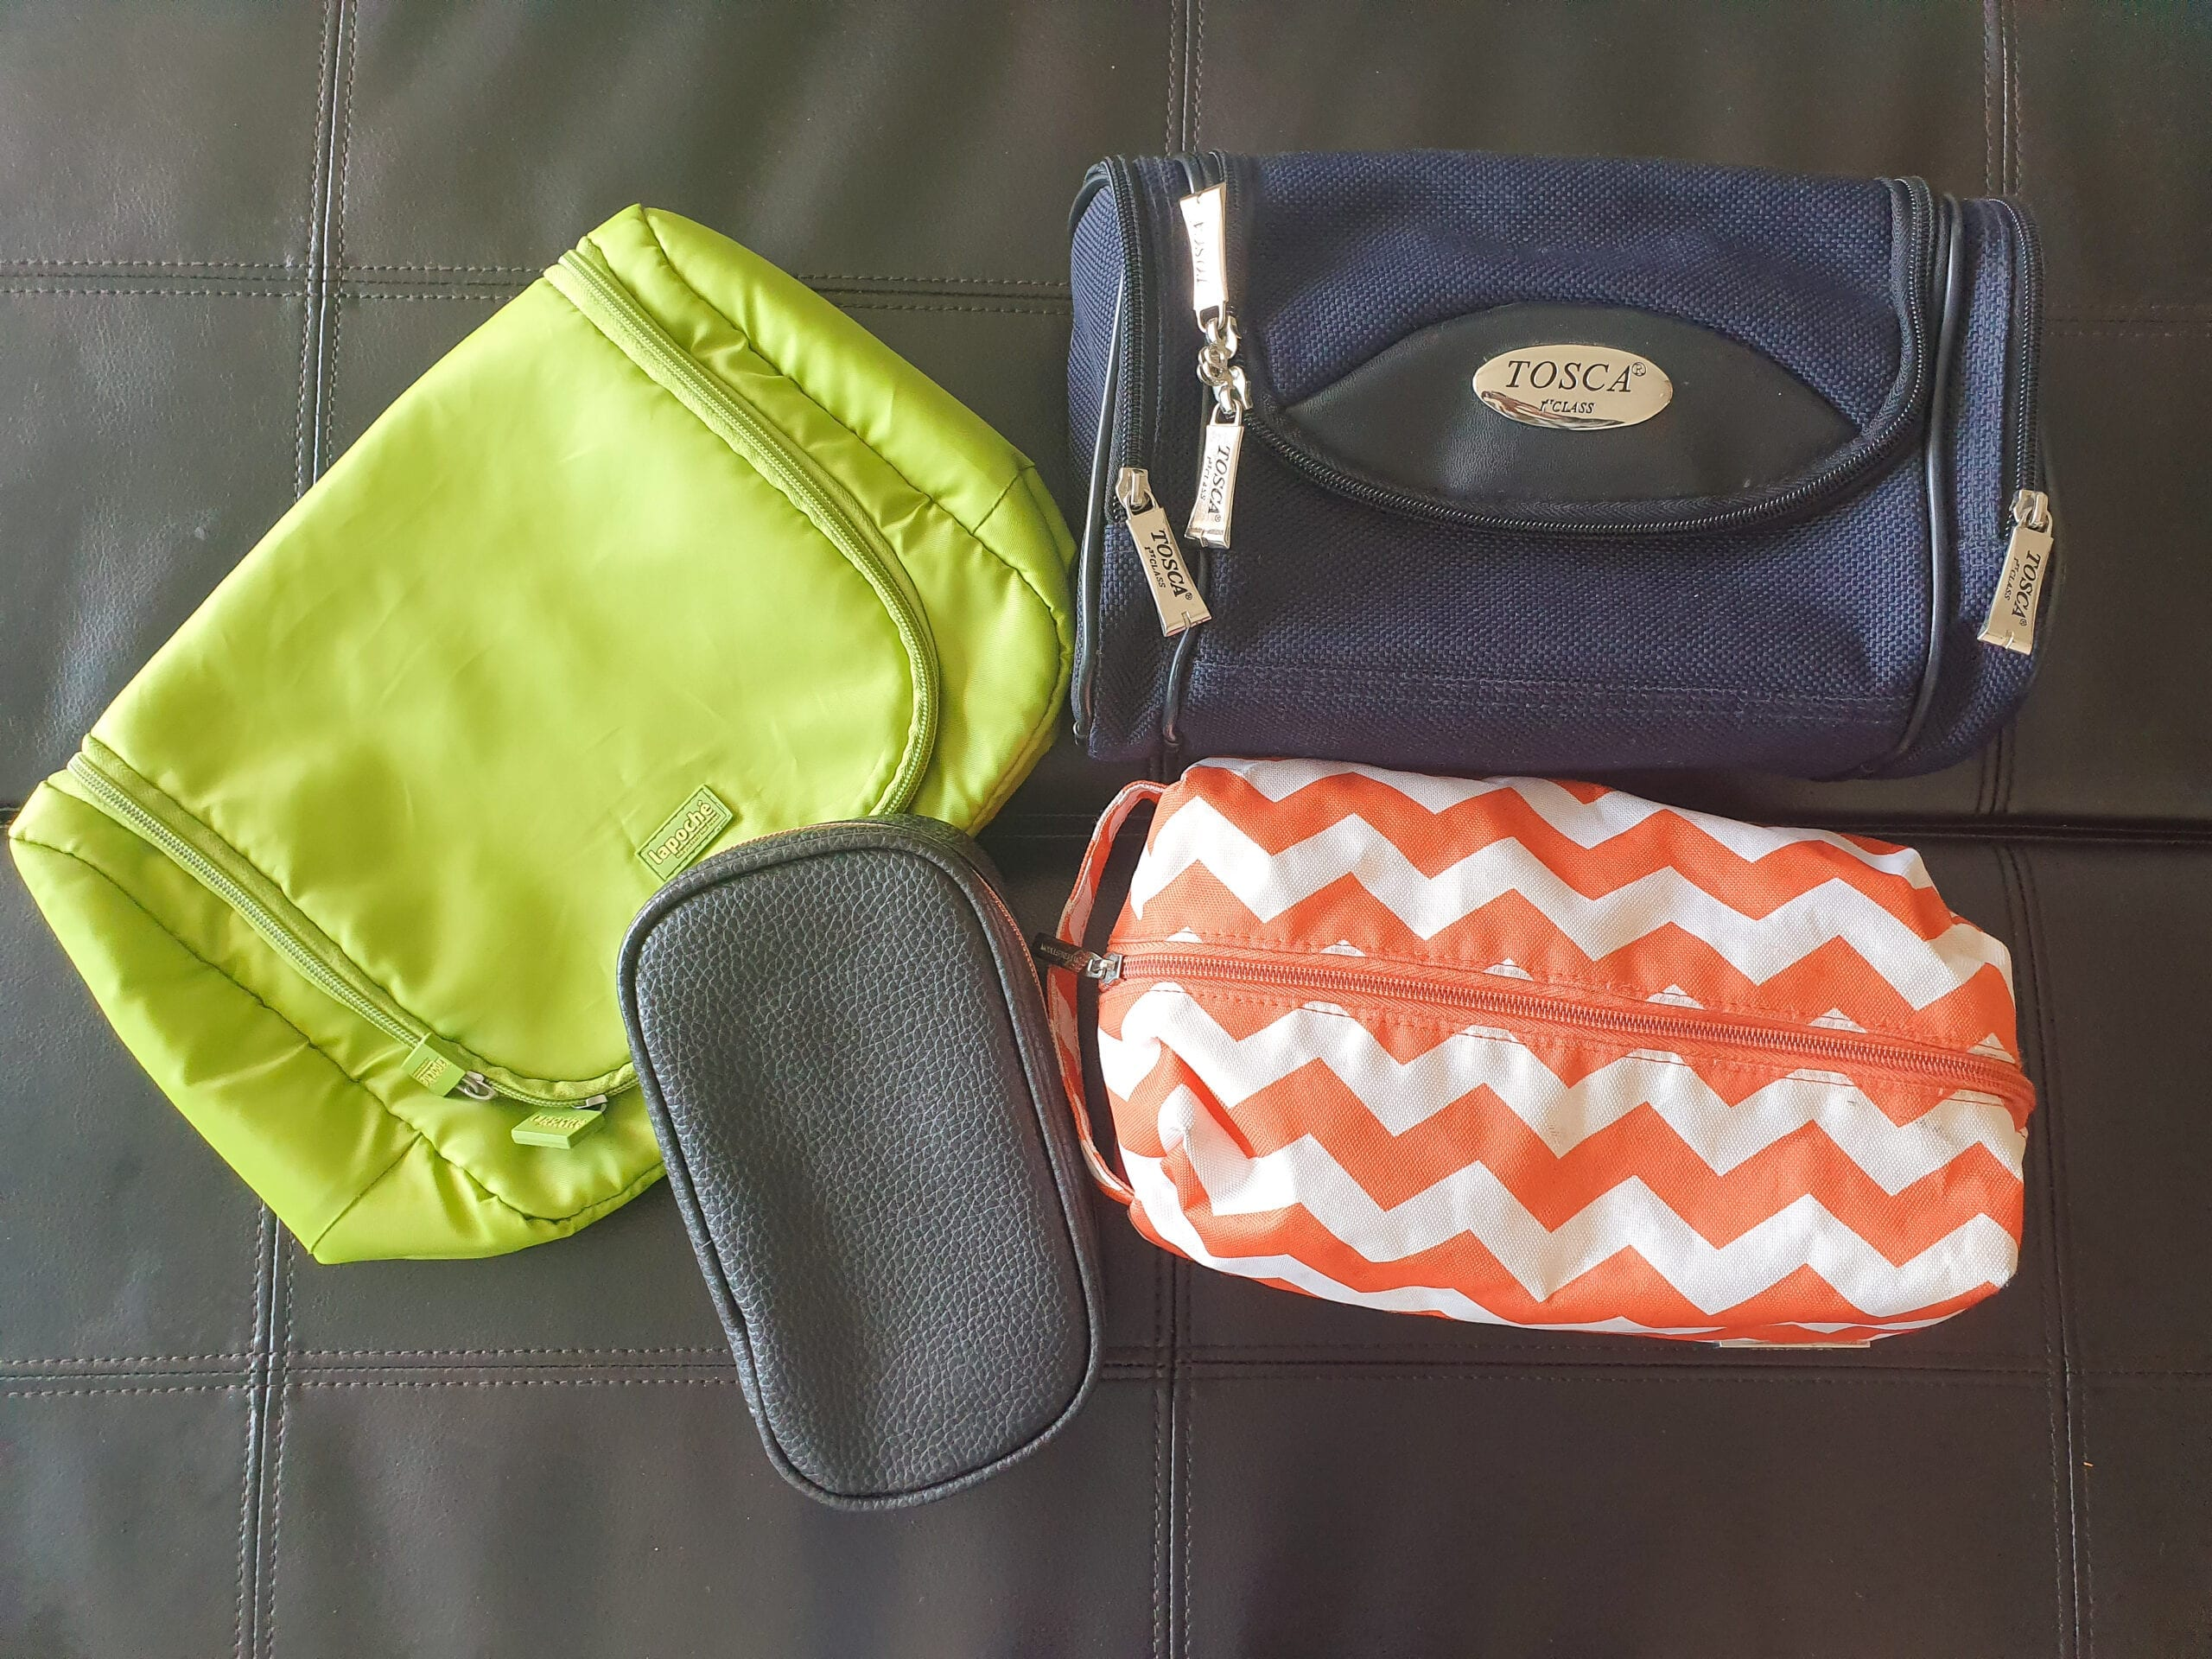 My toiletry bag collection